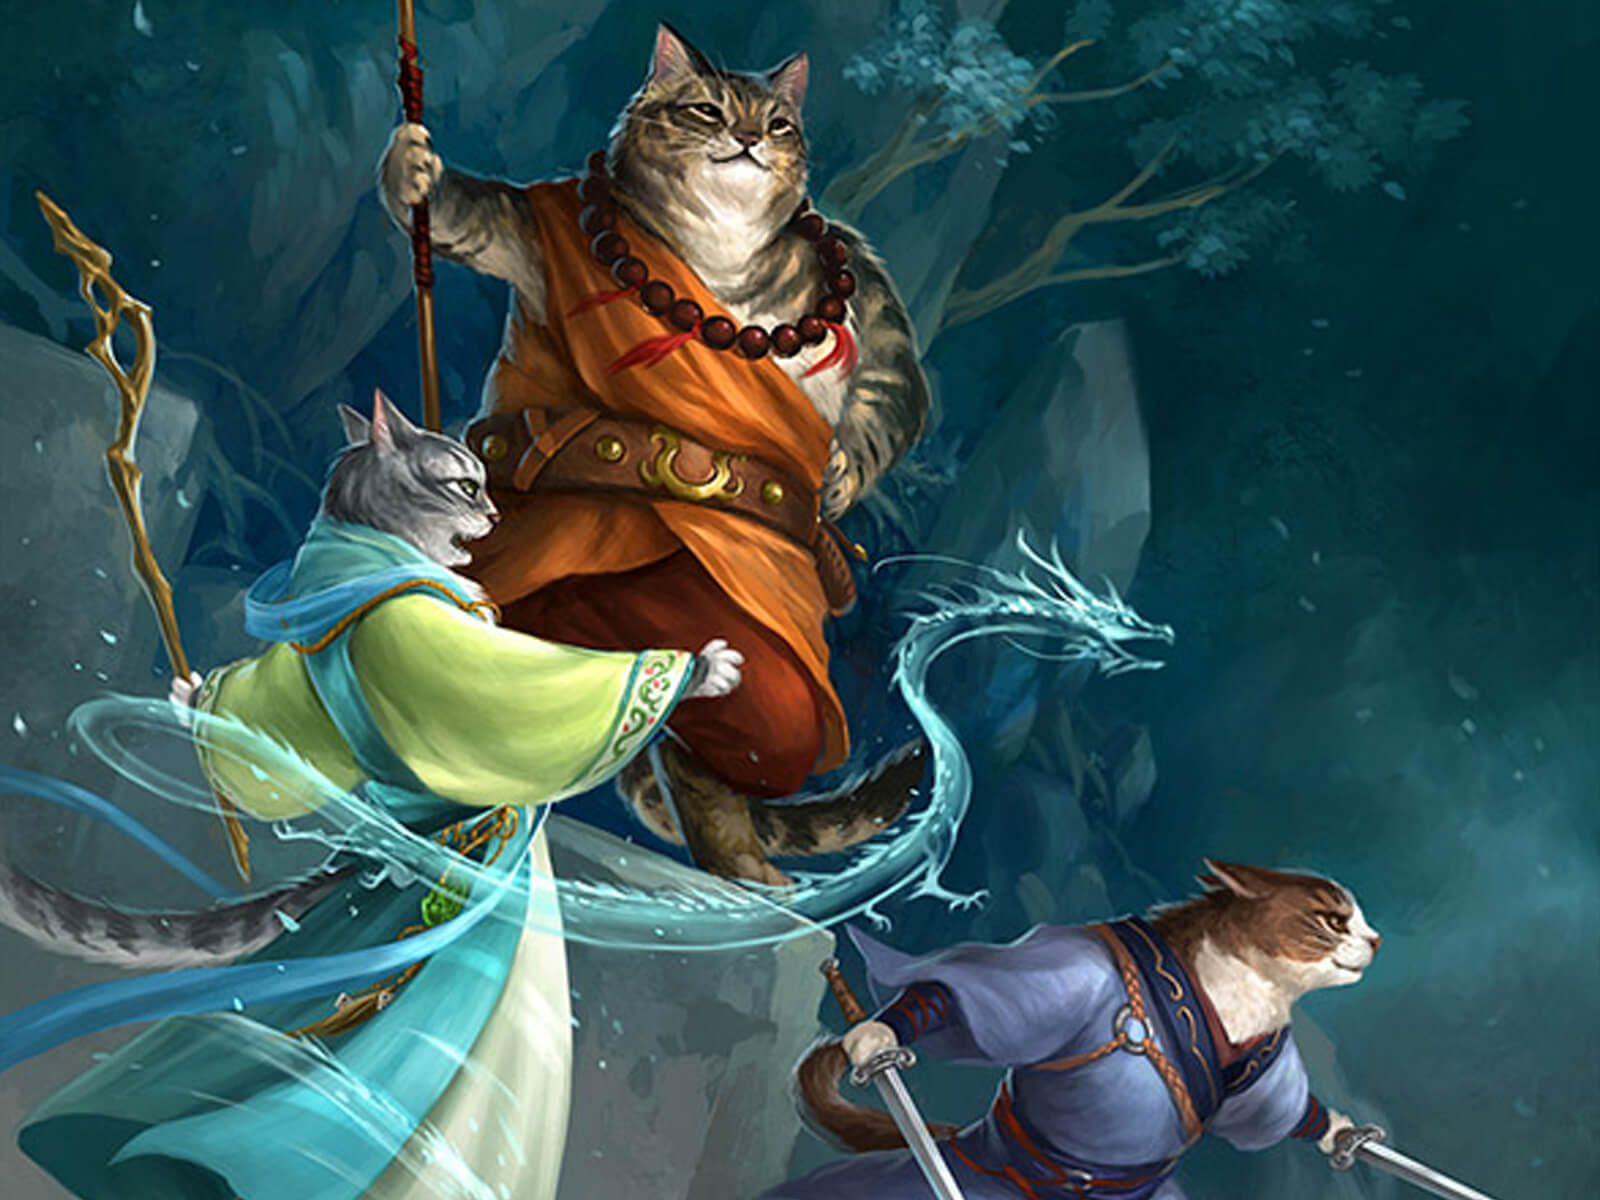 Three illustrated housecats are dressed in fantasy garb, holding staves, casting spells, and preparing to attack